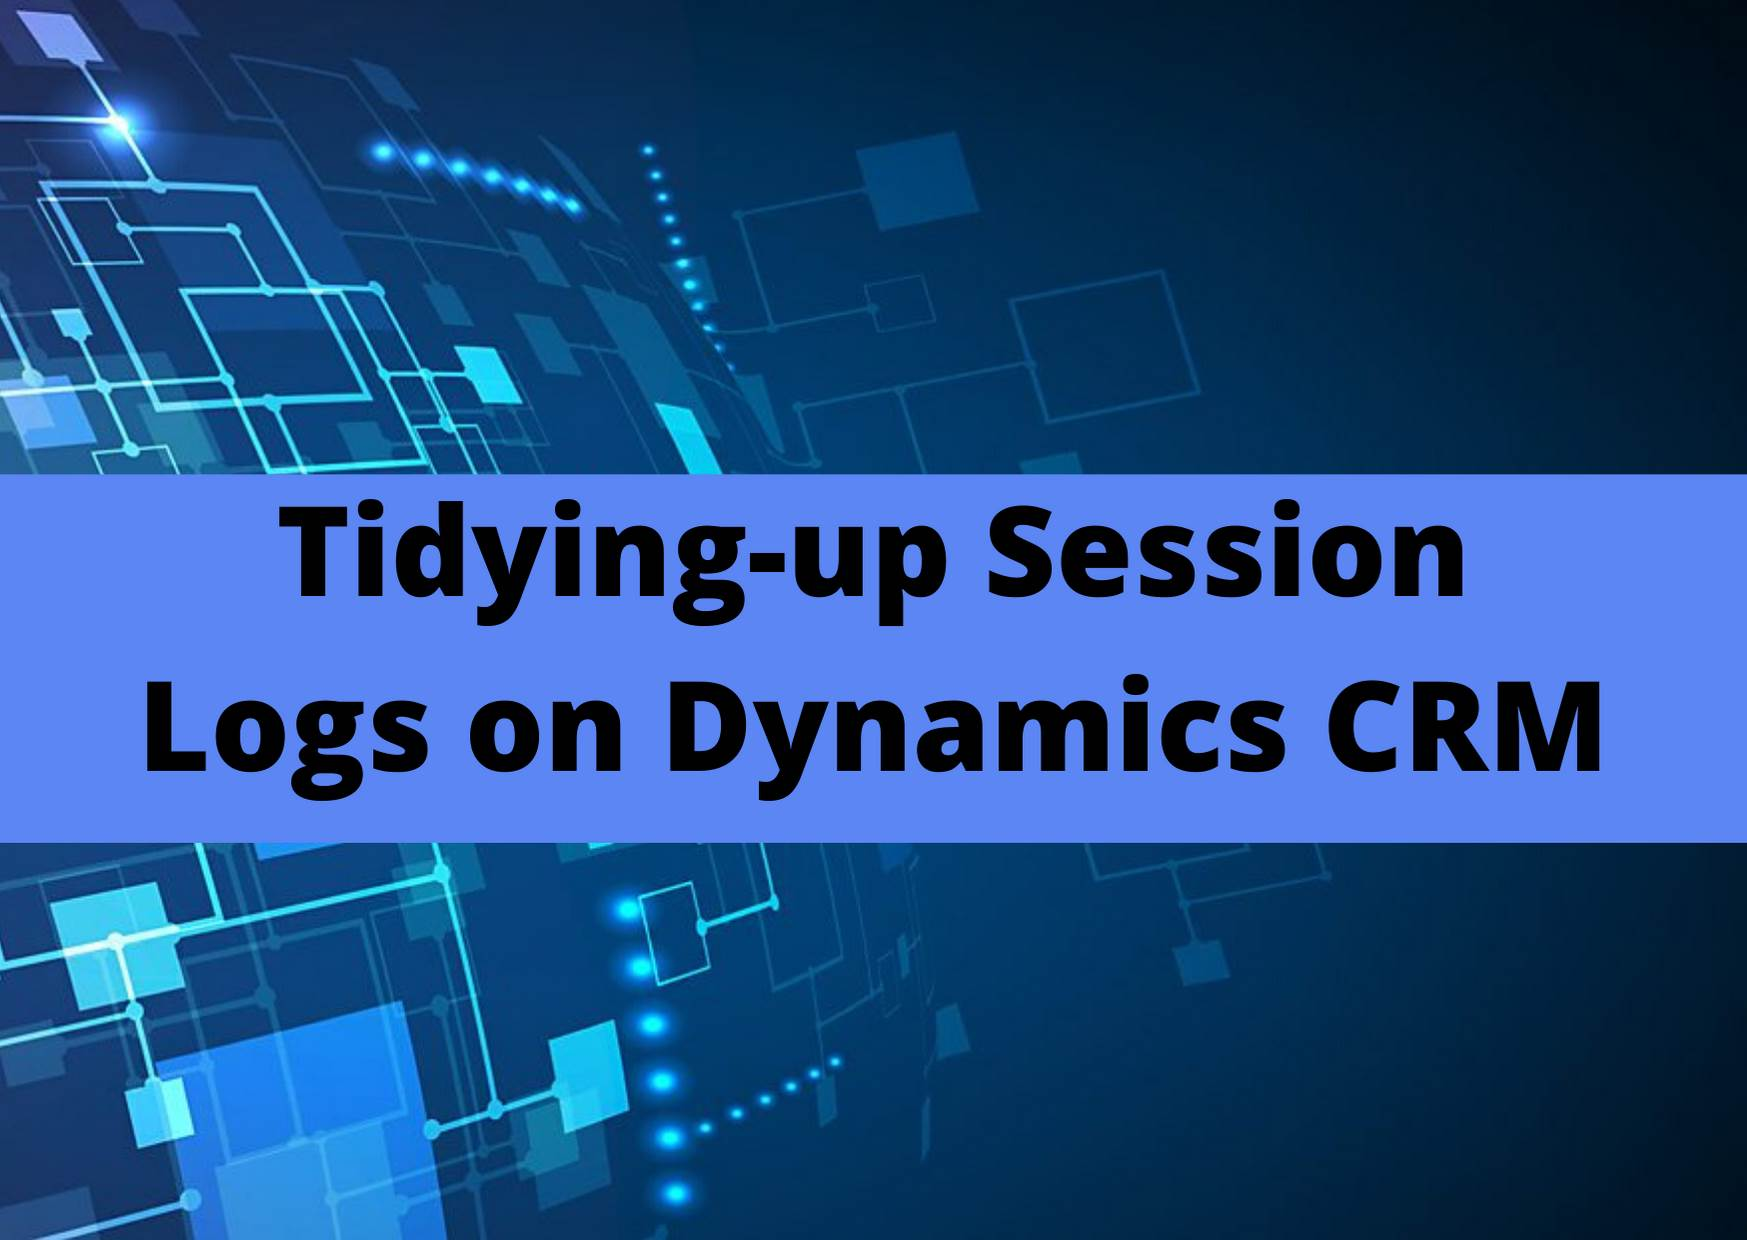 Tidying-up Session Logs on Dynamics CRM